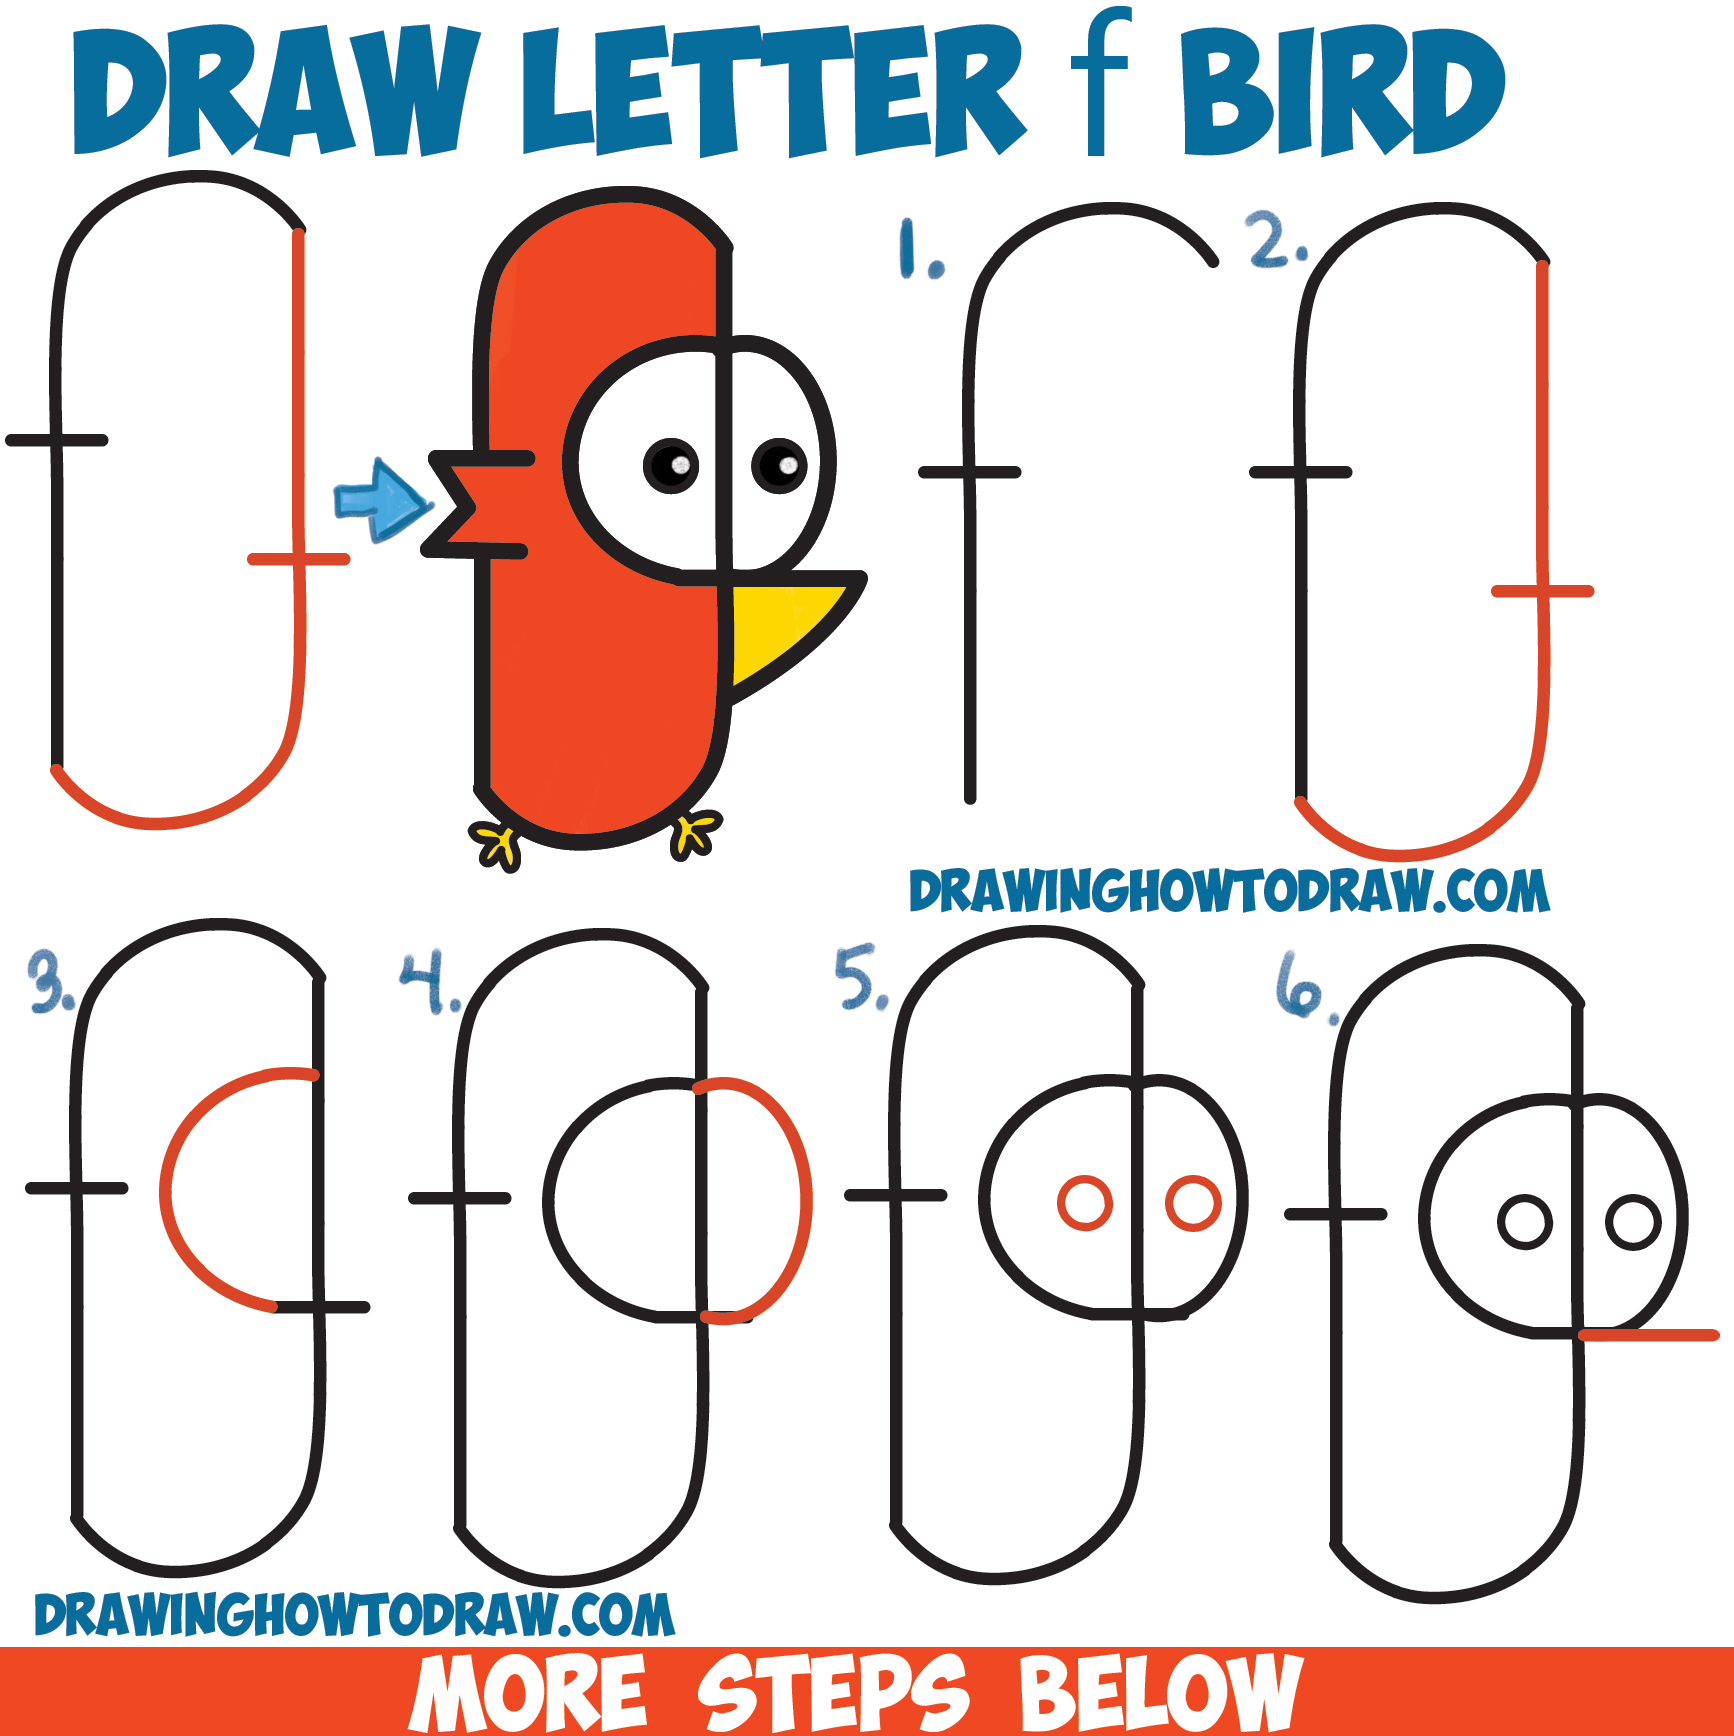 How to Draw Cute Cartoon Bird from Lowercase Letter 'f' Shapes Easy Step by Step Drawing Tutorial for Kids